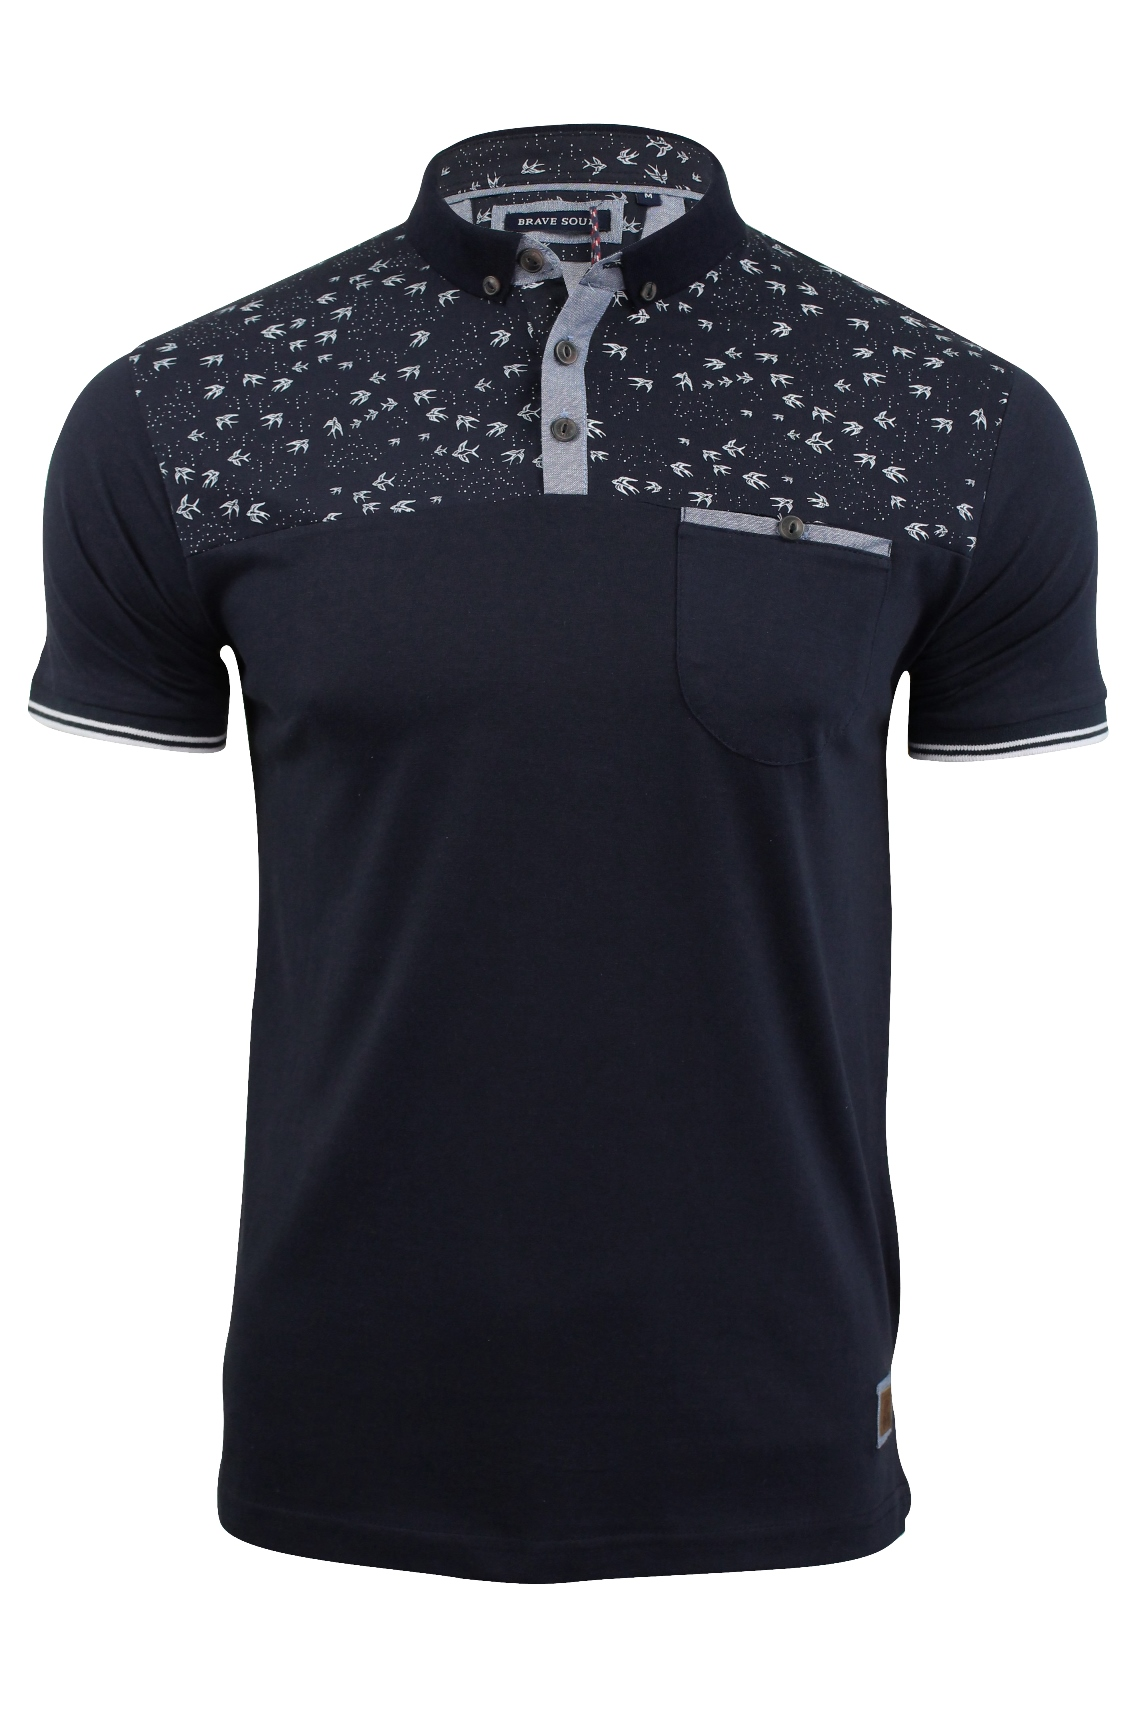 Mens polo shirt by brave soul 39 siward 39 with bird print ebay for Polo shirts for printing